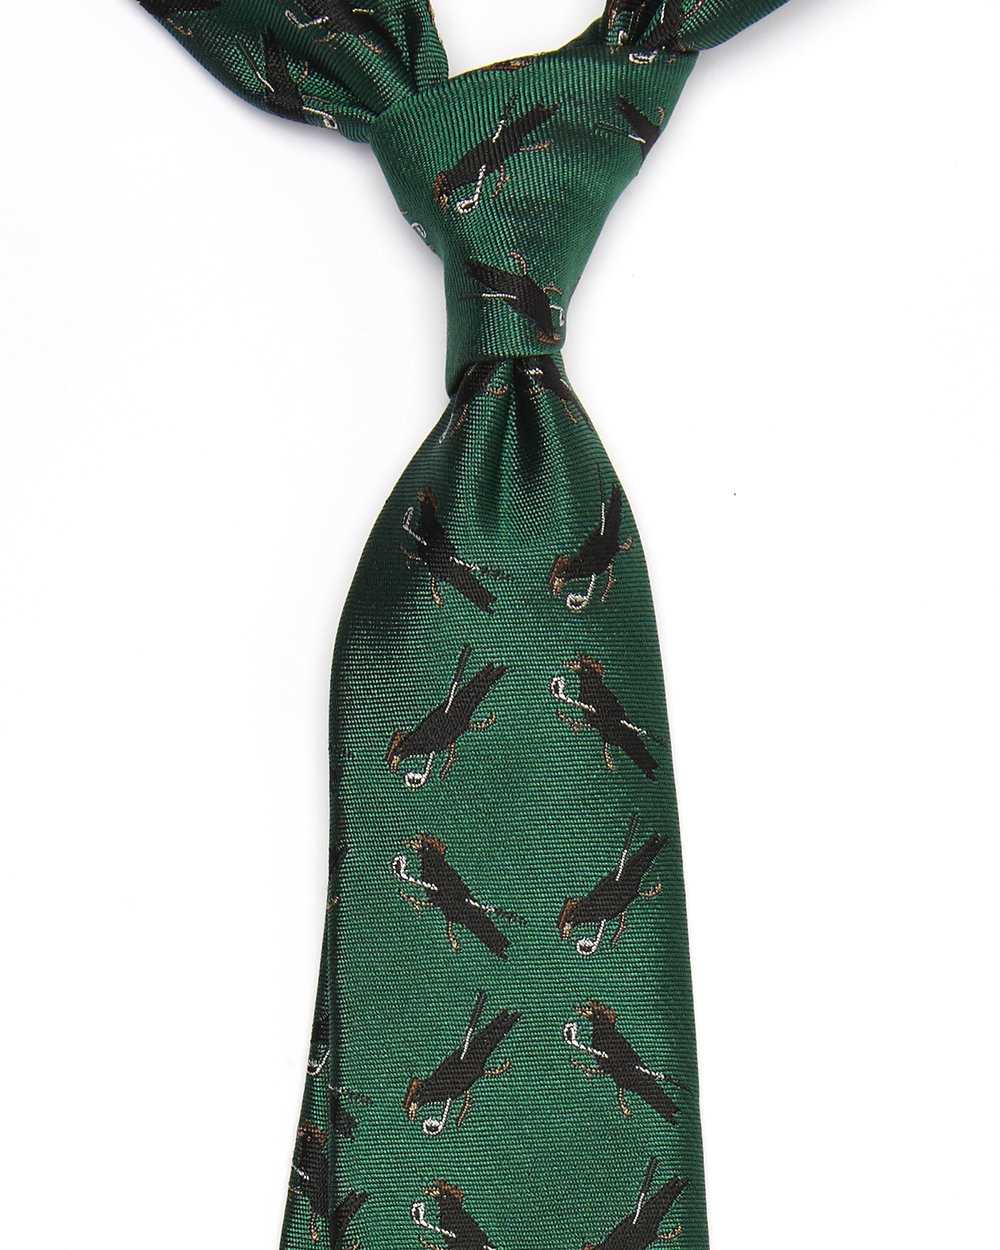 The Ernst Crow Tie. A lady likes nothing more than a gentleman who has a sense of humour! This tie will not make her laugh directly but will hint at the fact that you are playful at heart. This rich emerald green tie would be perfect for your partner if they love to play golf! Click on image for more information.